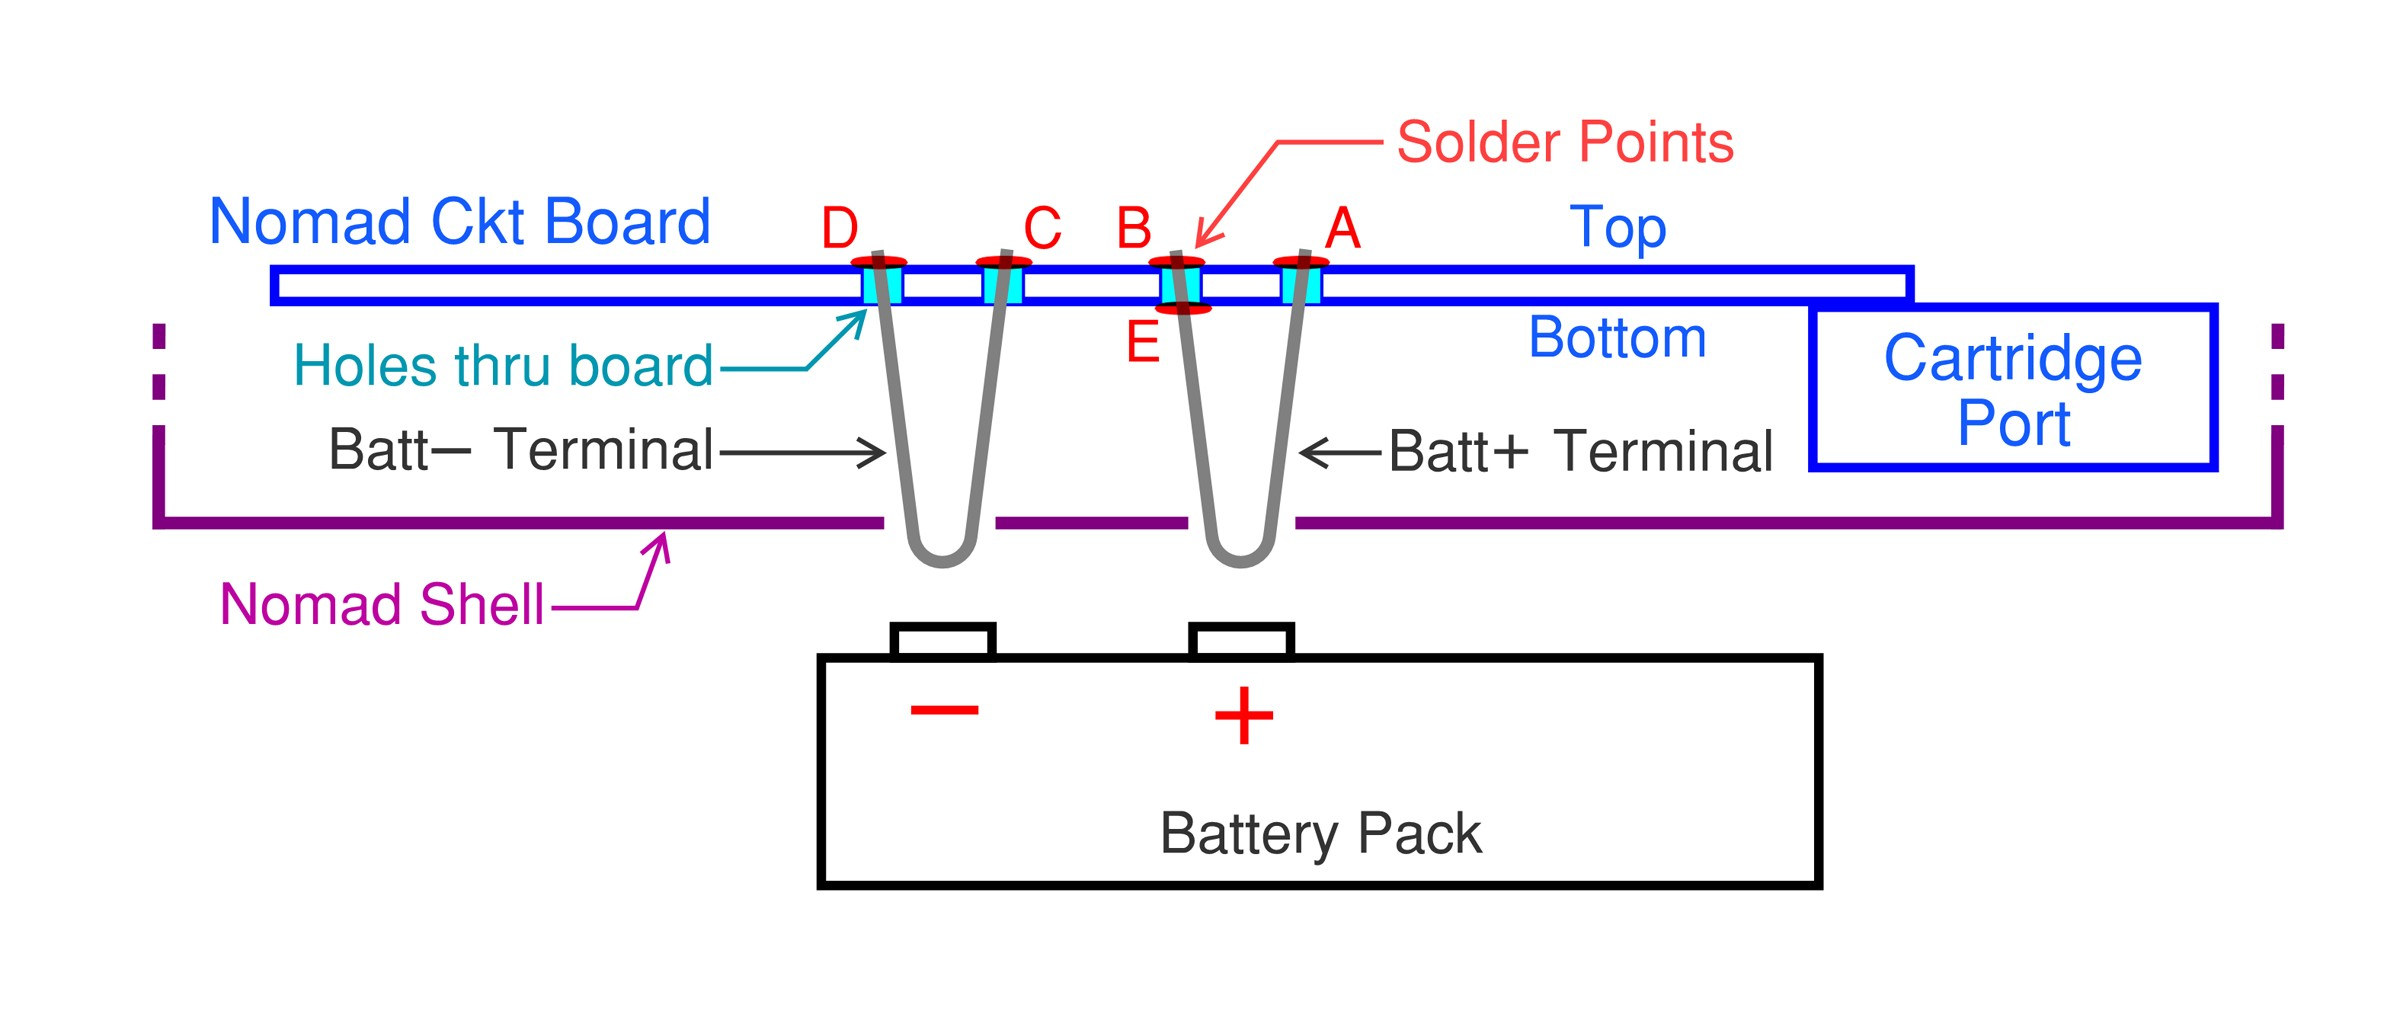 Points B D and E are where the new battery lead wires will connect later on